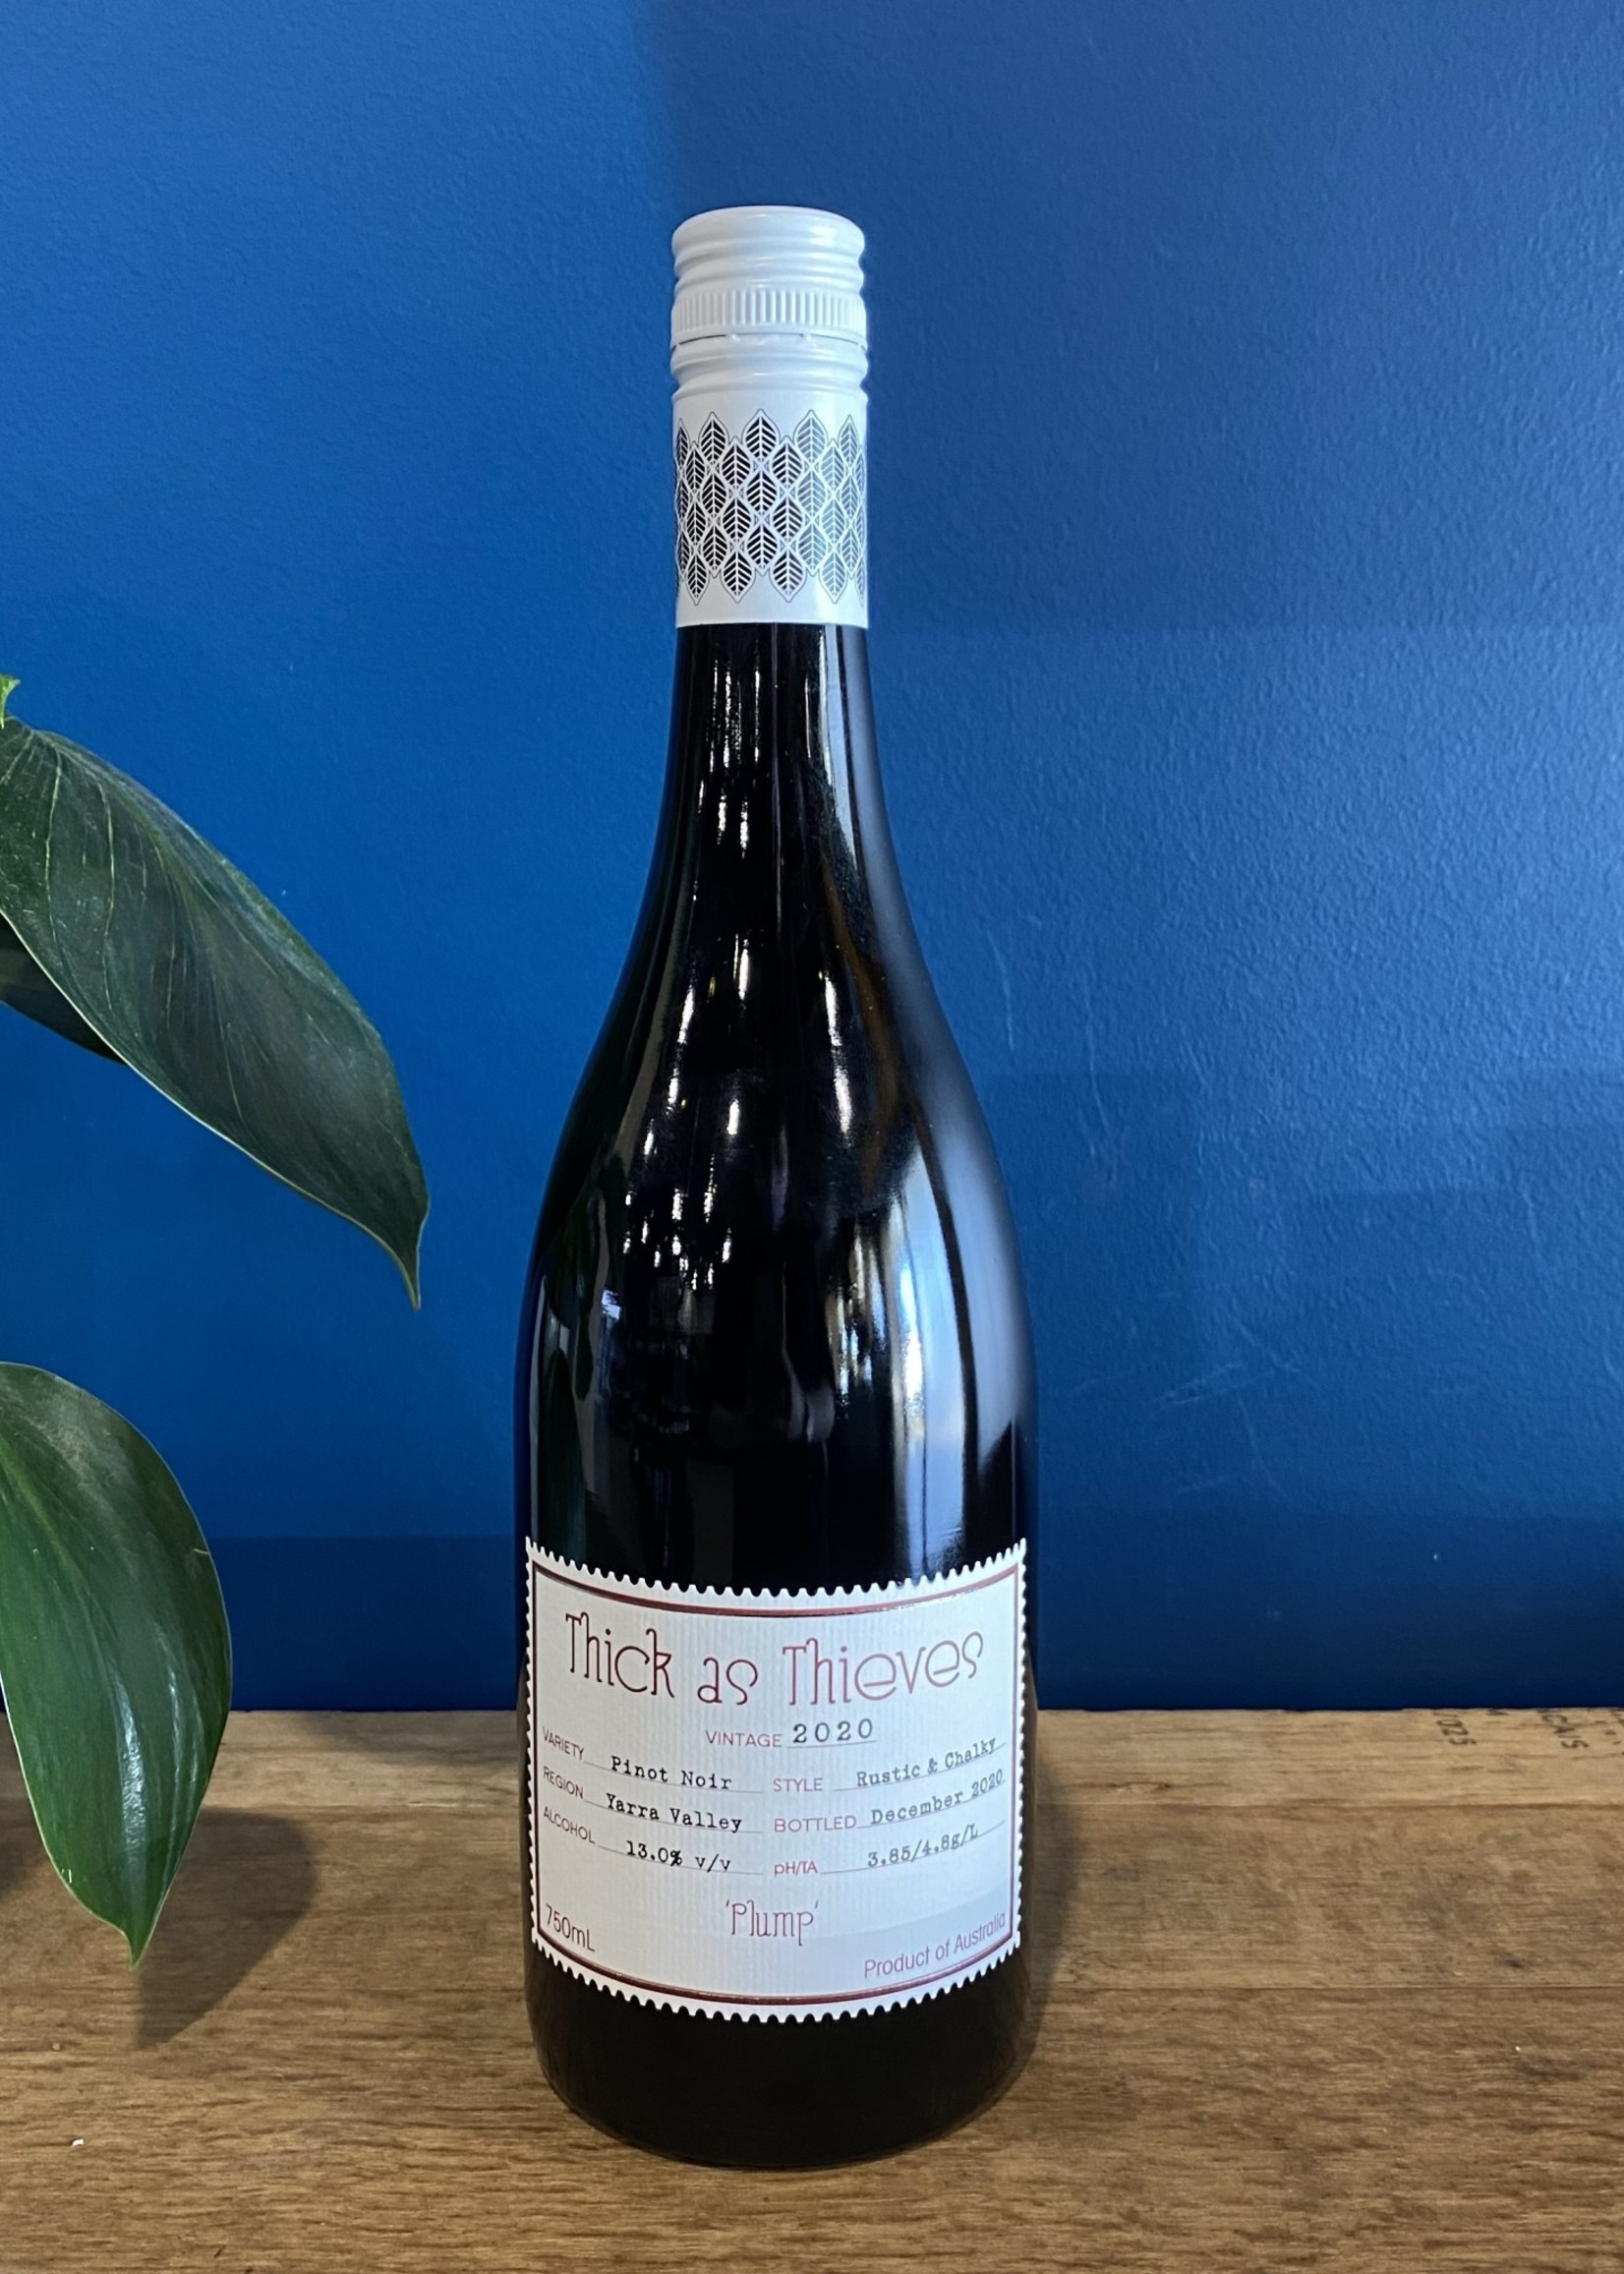 Thick As Thieves Thick as Thieves 2020 Pinot Noir